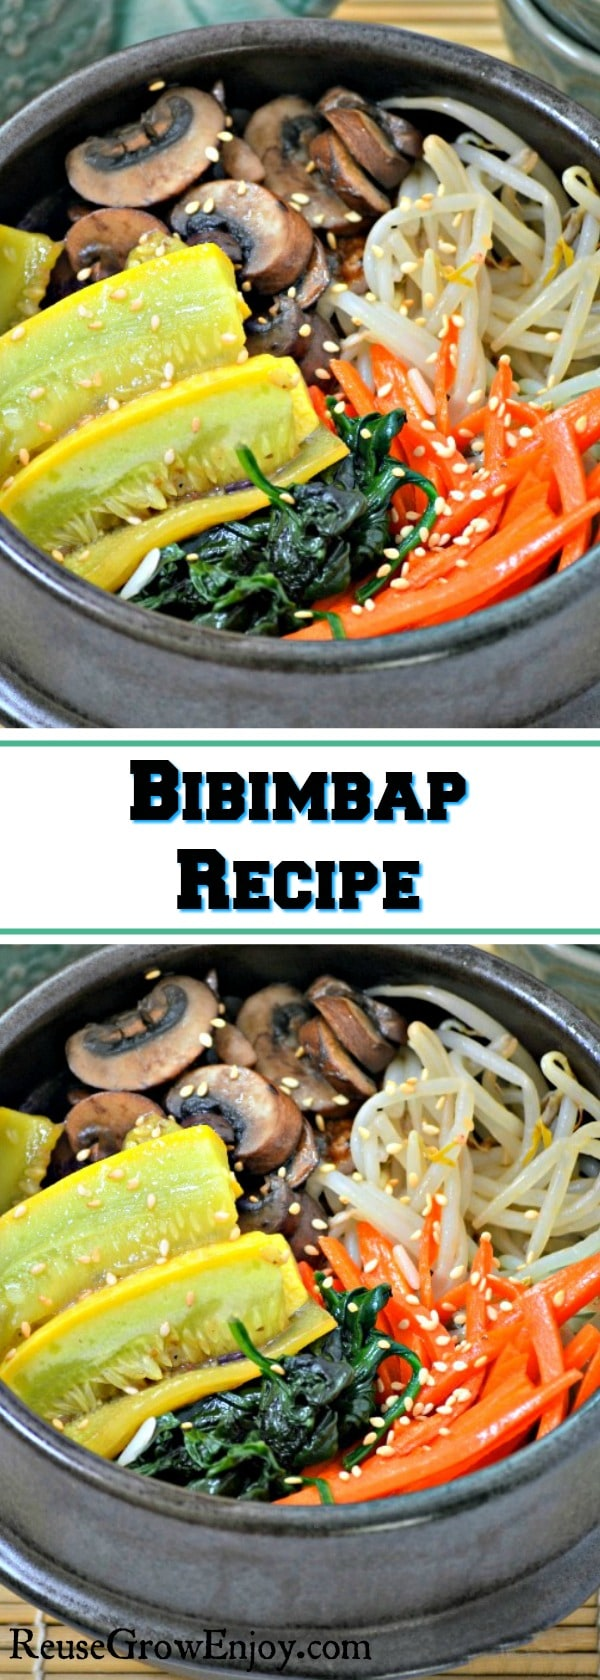 Looking for a new recipe to try with all your fresh produce? Check out this easy and yummy Bibimbap Recipe!